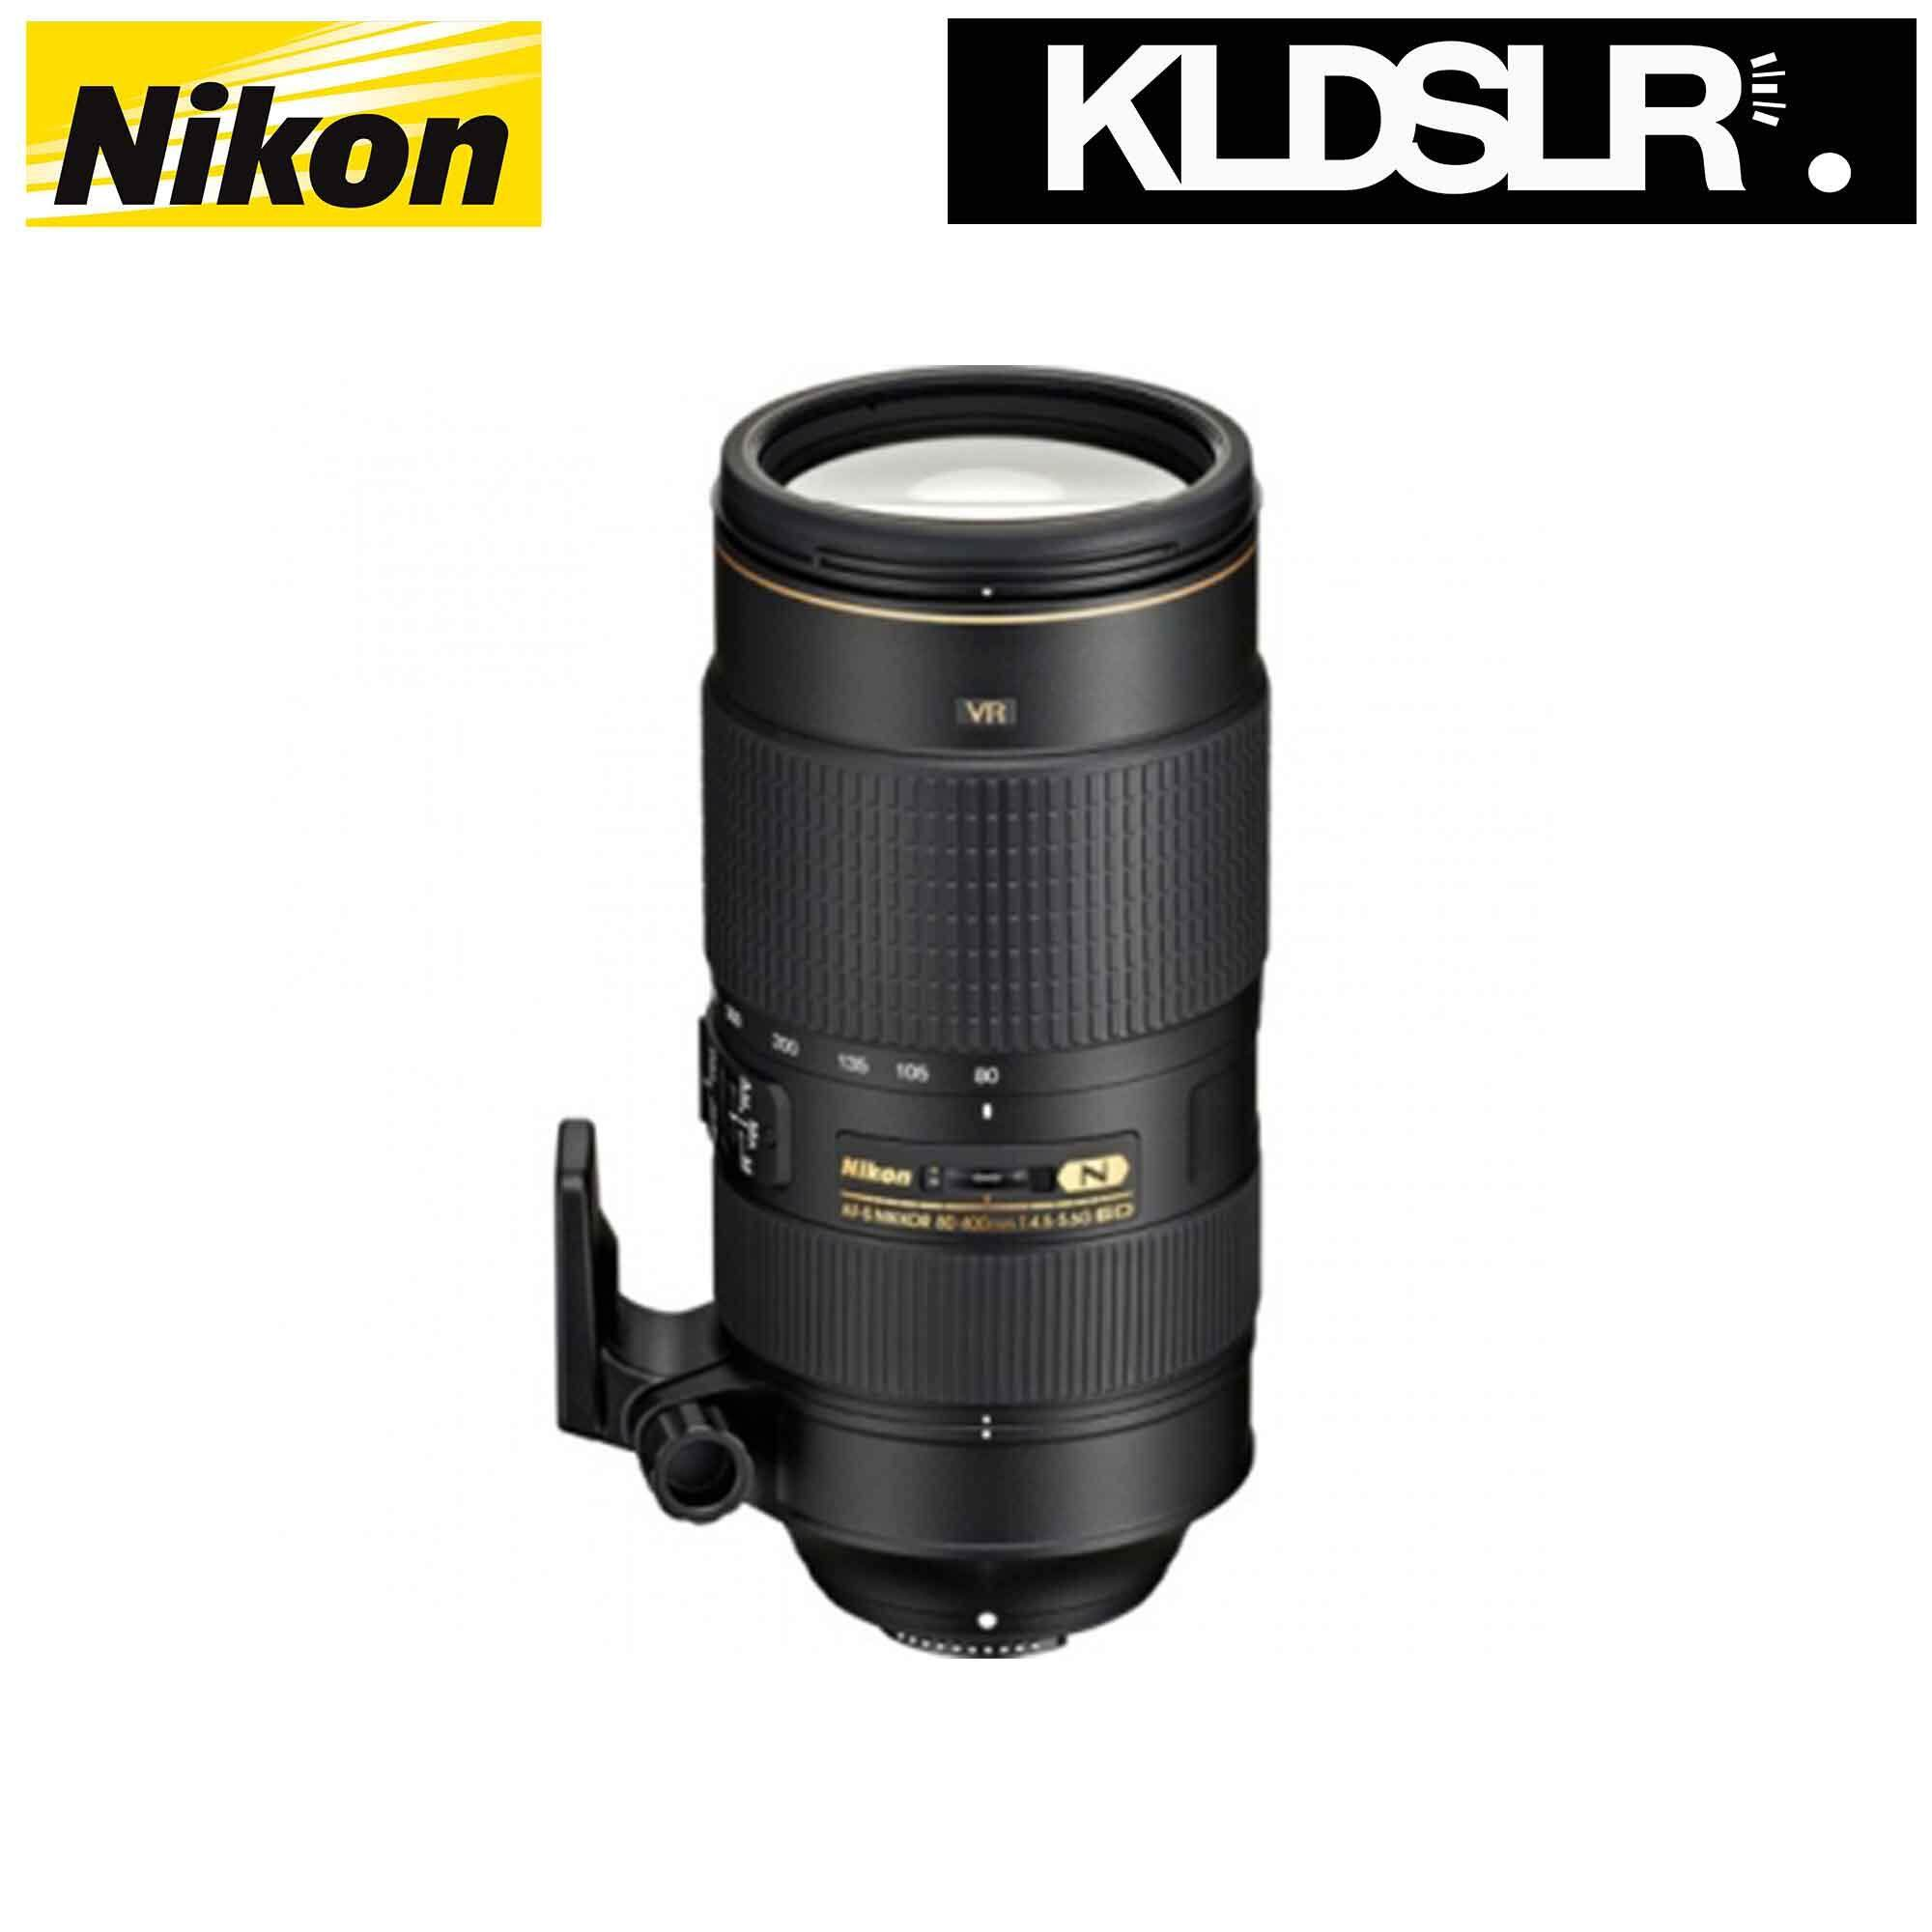 Nikon Cameras Lenses Price In Malaysia Best Af 105mm F 28g If Ed Dx Fisheye S 80 400mm 45 56g Vr